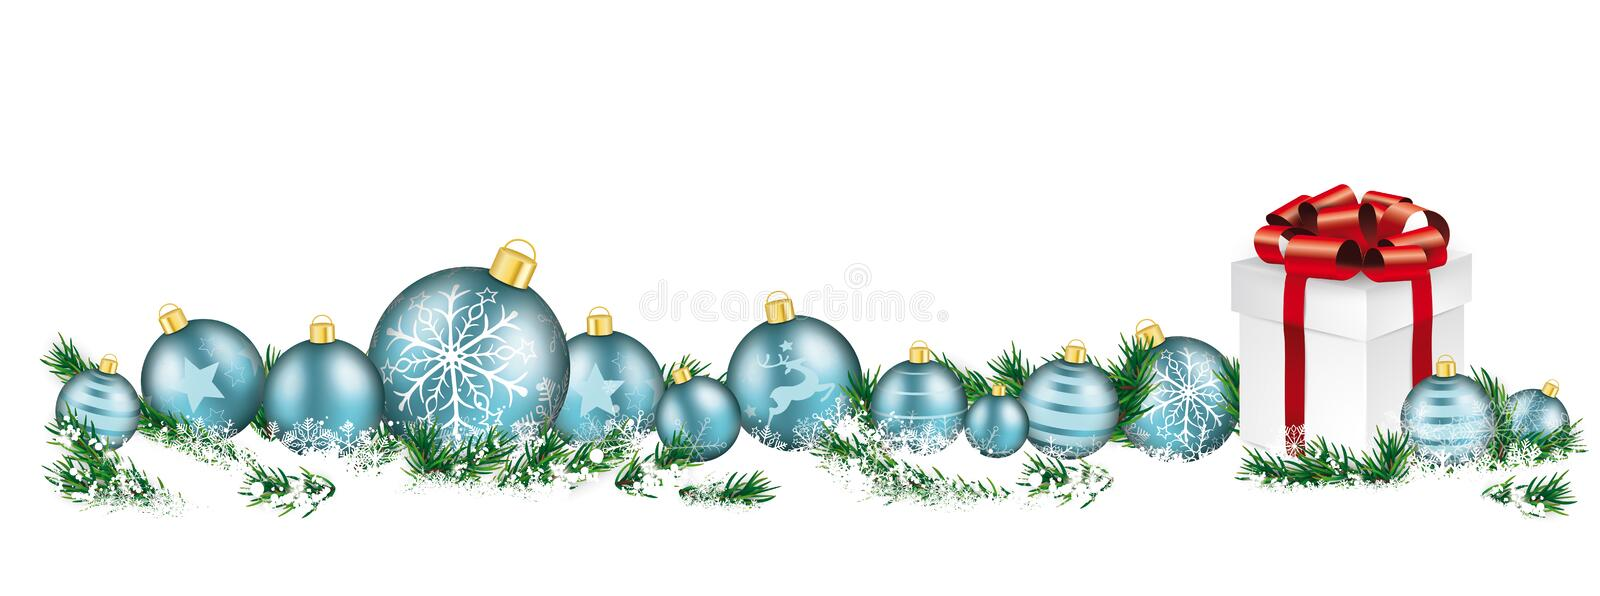 Christmas Cyan Baubles White Headline Snow Banner Gift. Cyan christmas baubles with twigs in the snow royalty free illustration